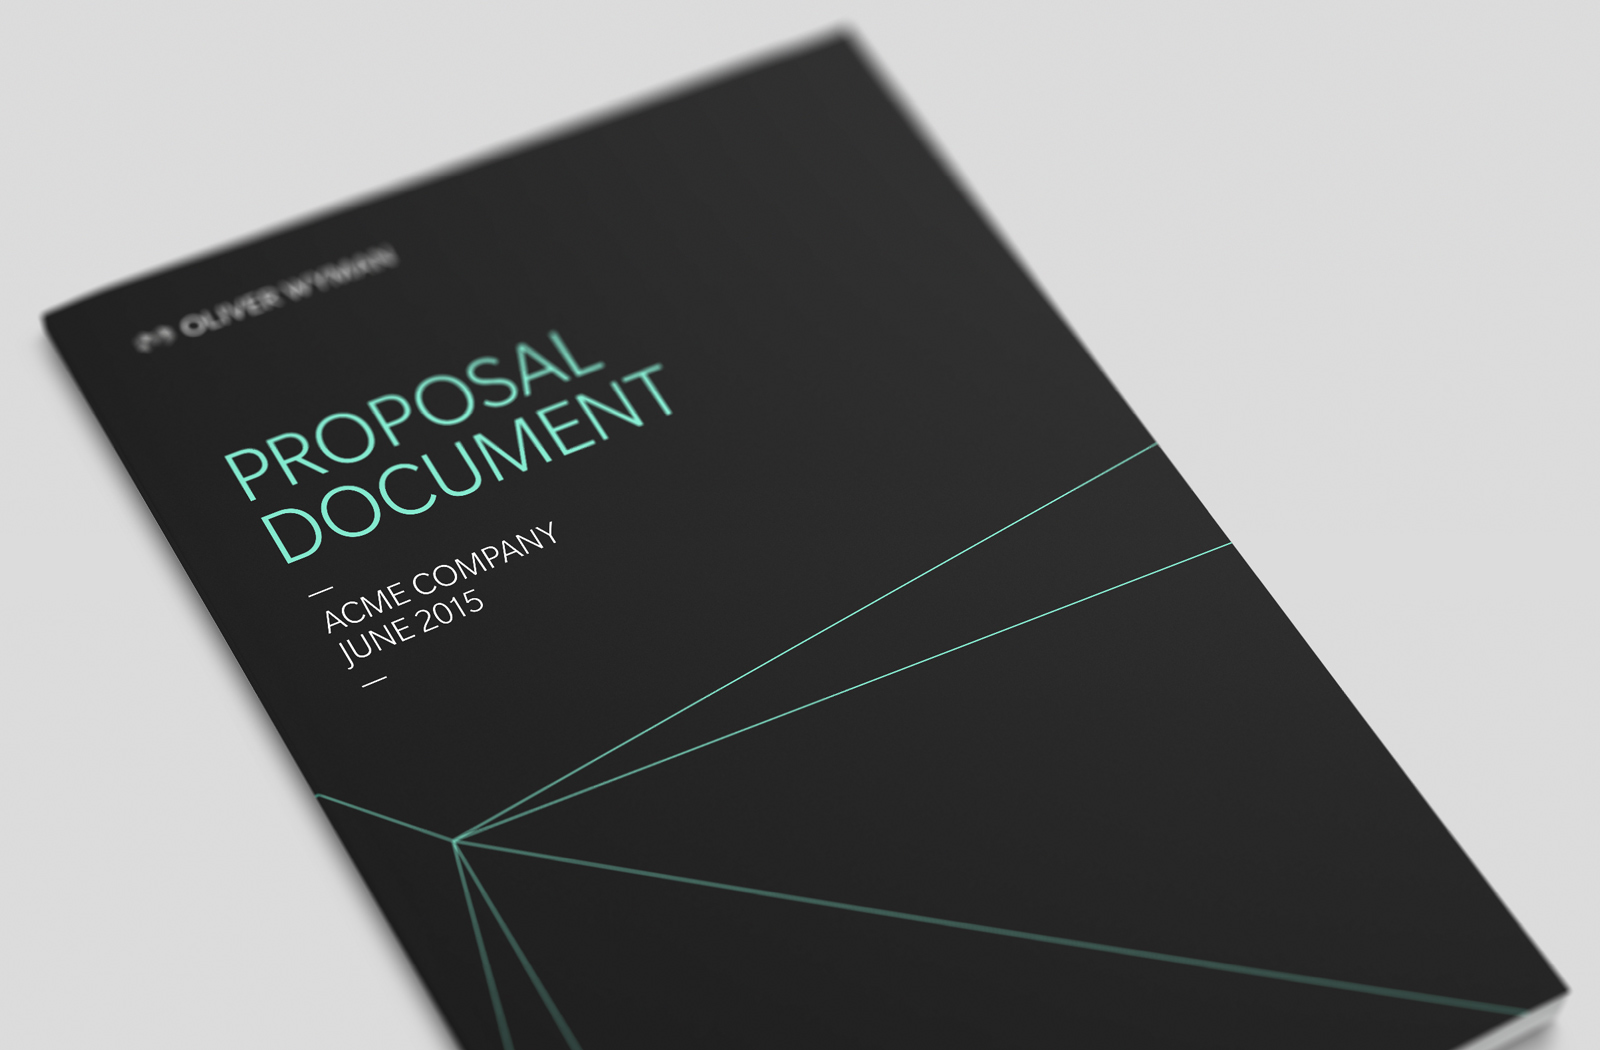 Oliver Wyman Proposals Dangar Graphic Design Art